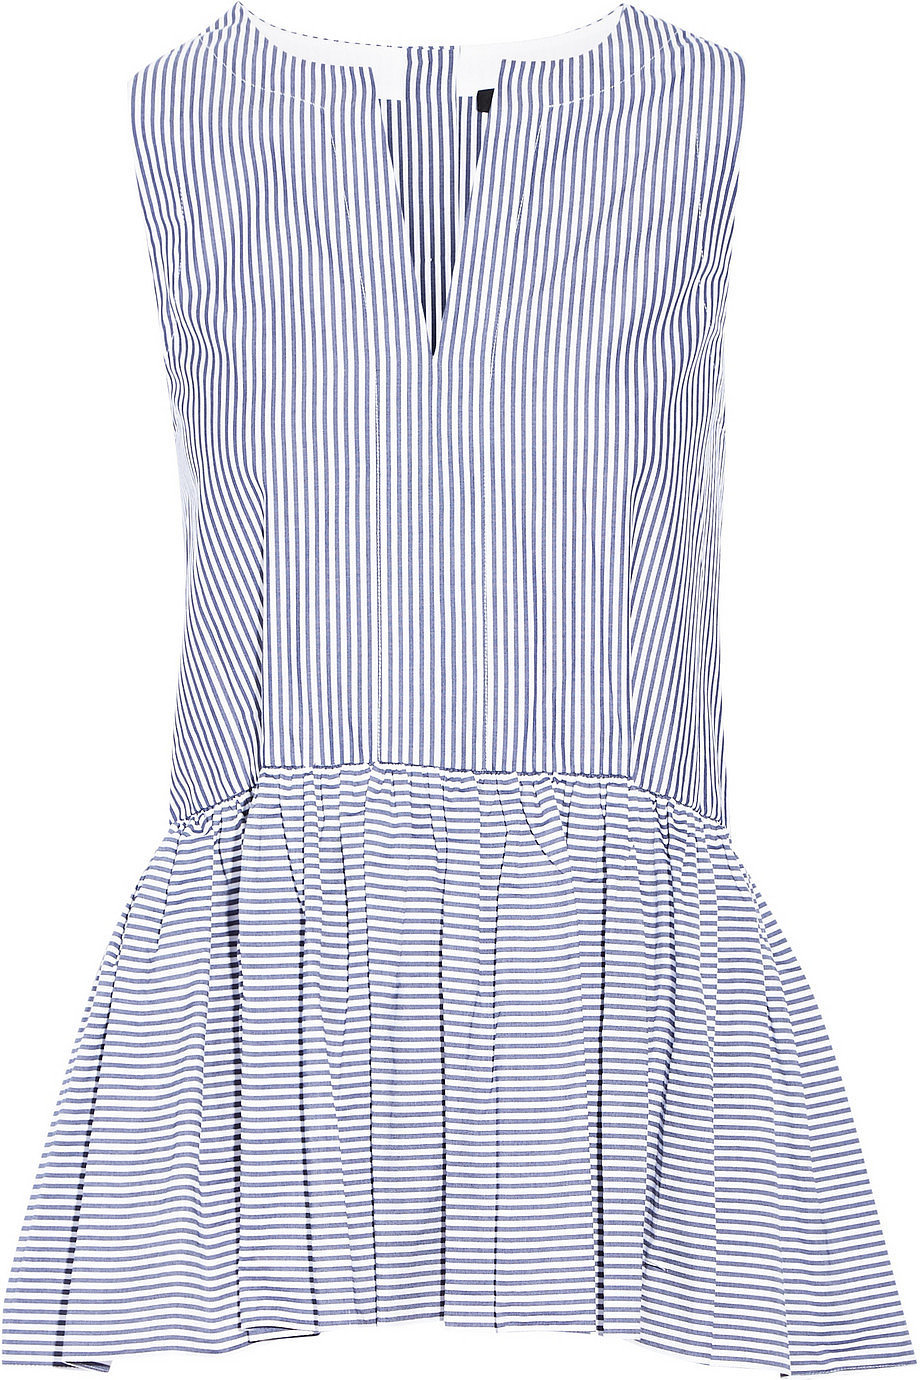 Tibi Striped Peplum Top